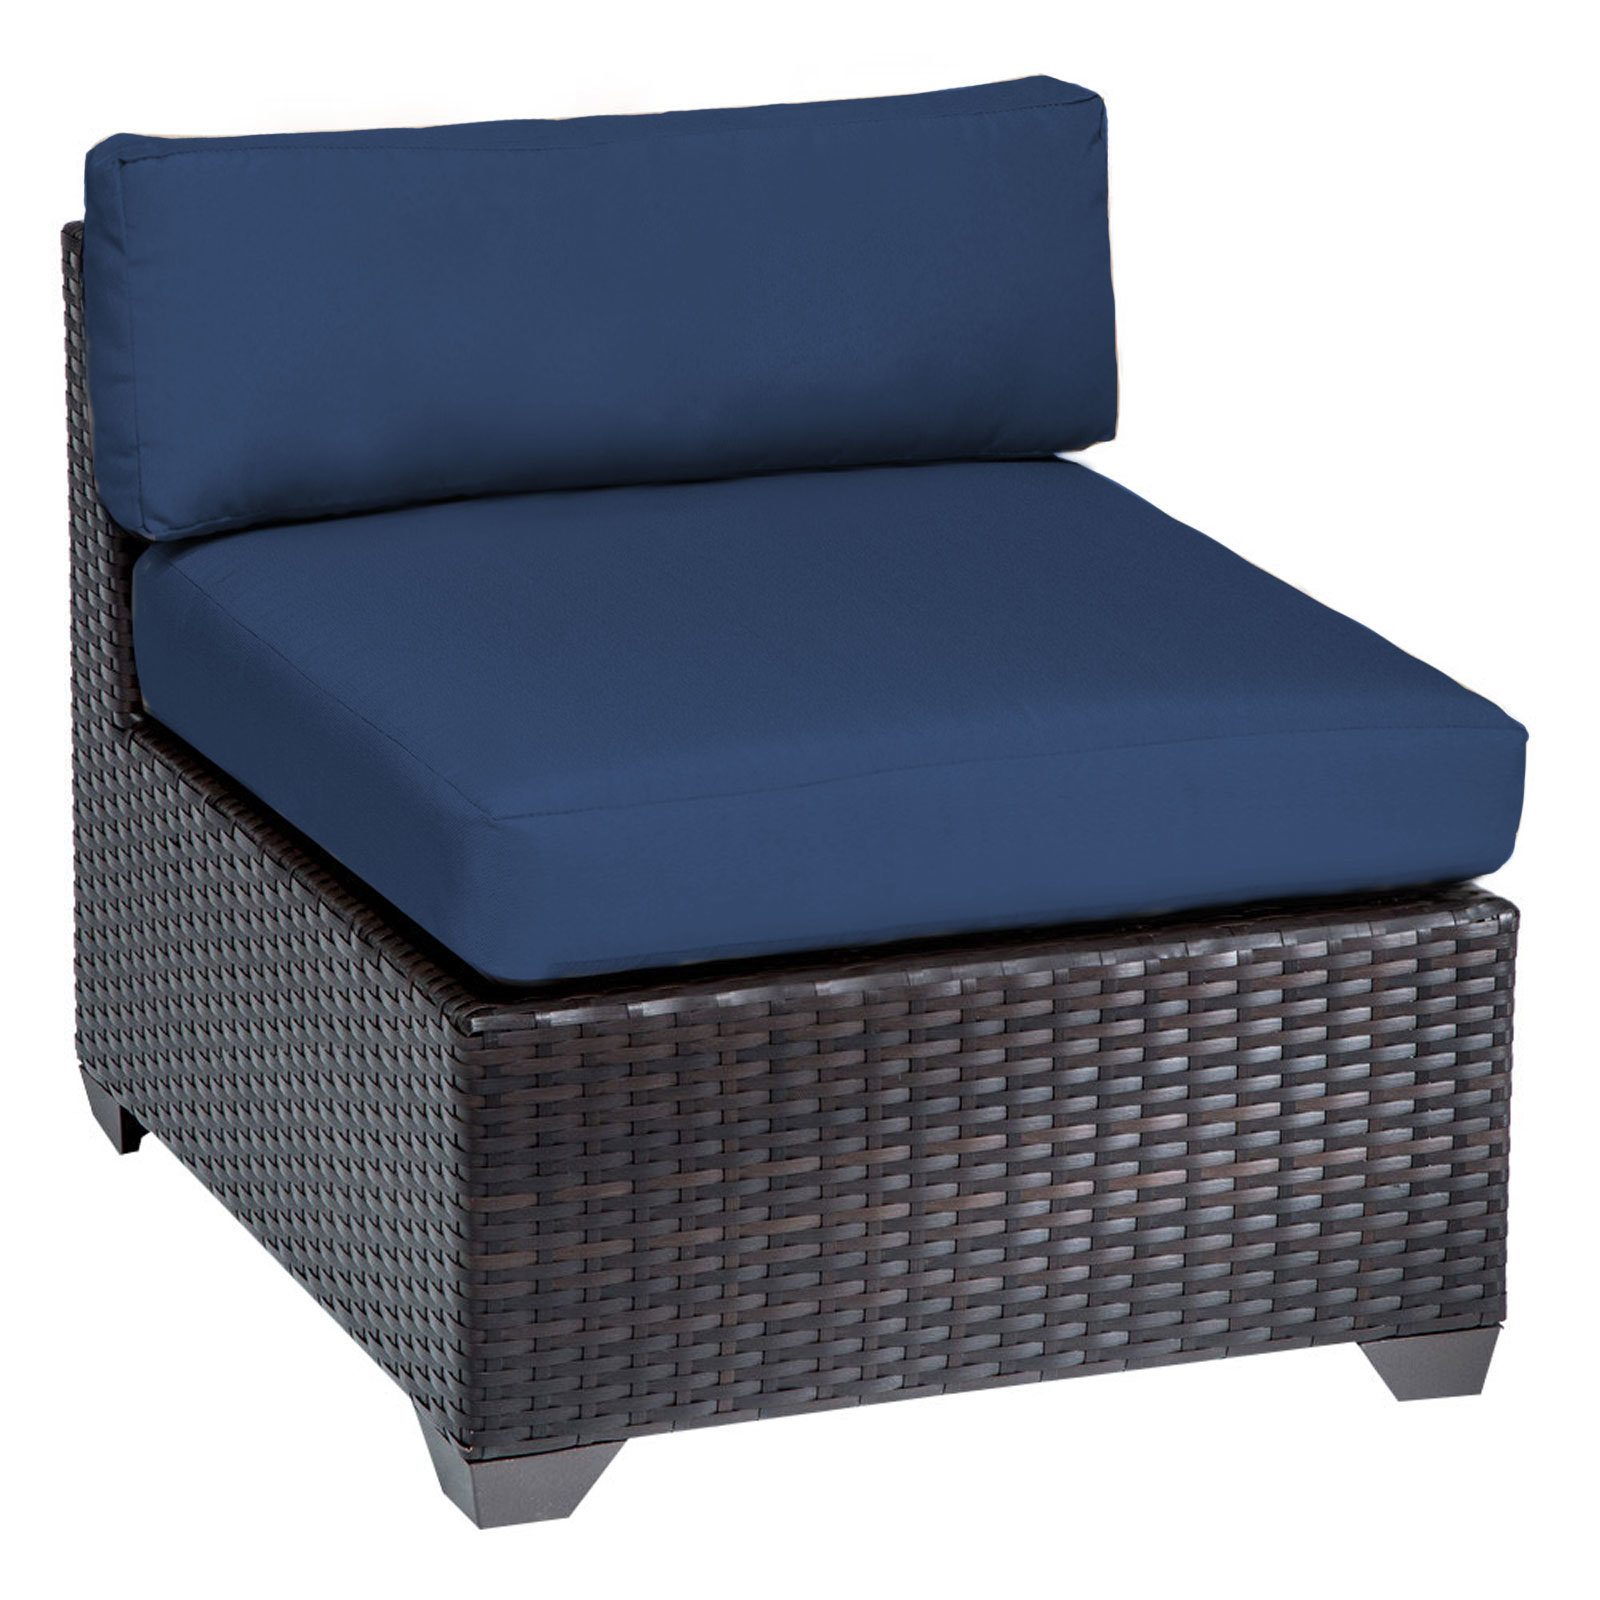 Favorite Camak Patio Sofas With Cushions For Camak Patio Chair With Cushions (View 18 of 20)